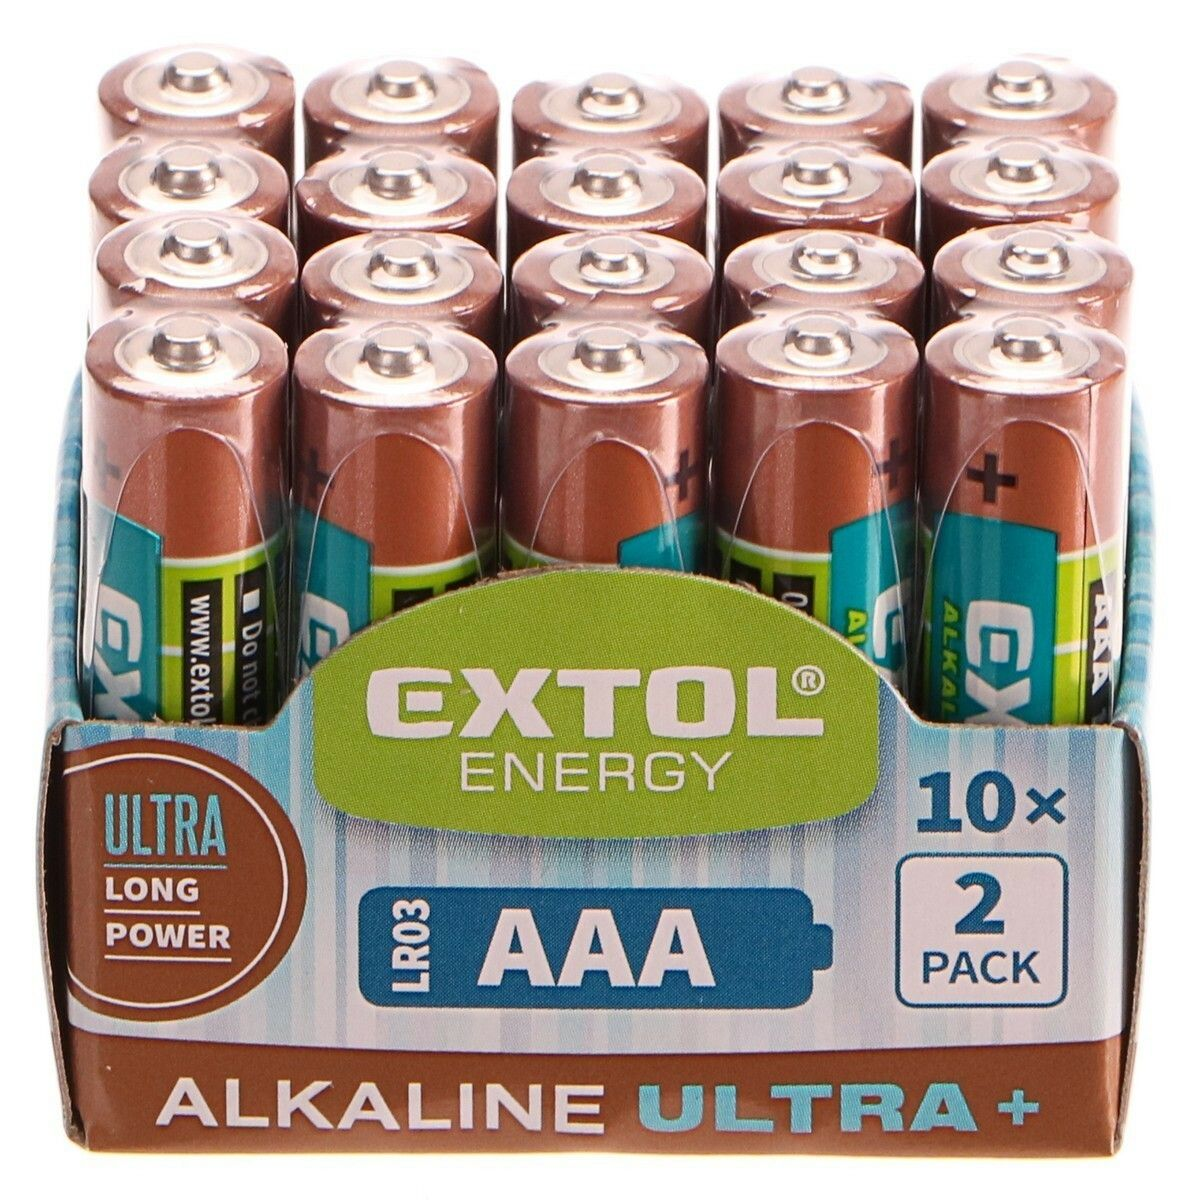 Baterie alkalické EXTOL ENERGY ULTRA +, 20ks, 1,5V AAA (LR03) EXTOL-LIGHT